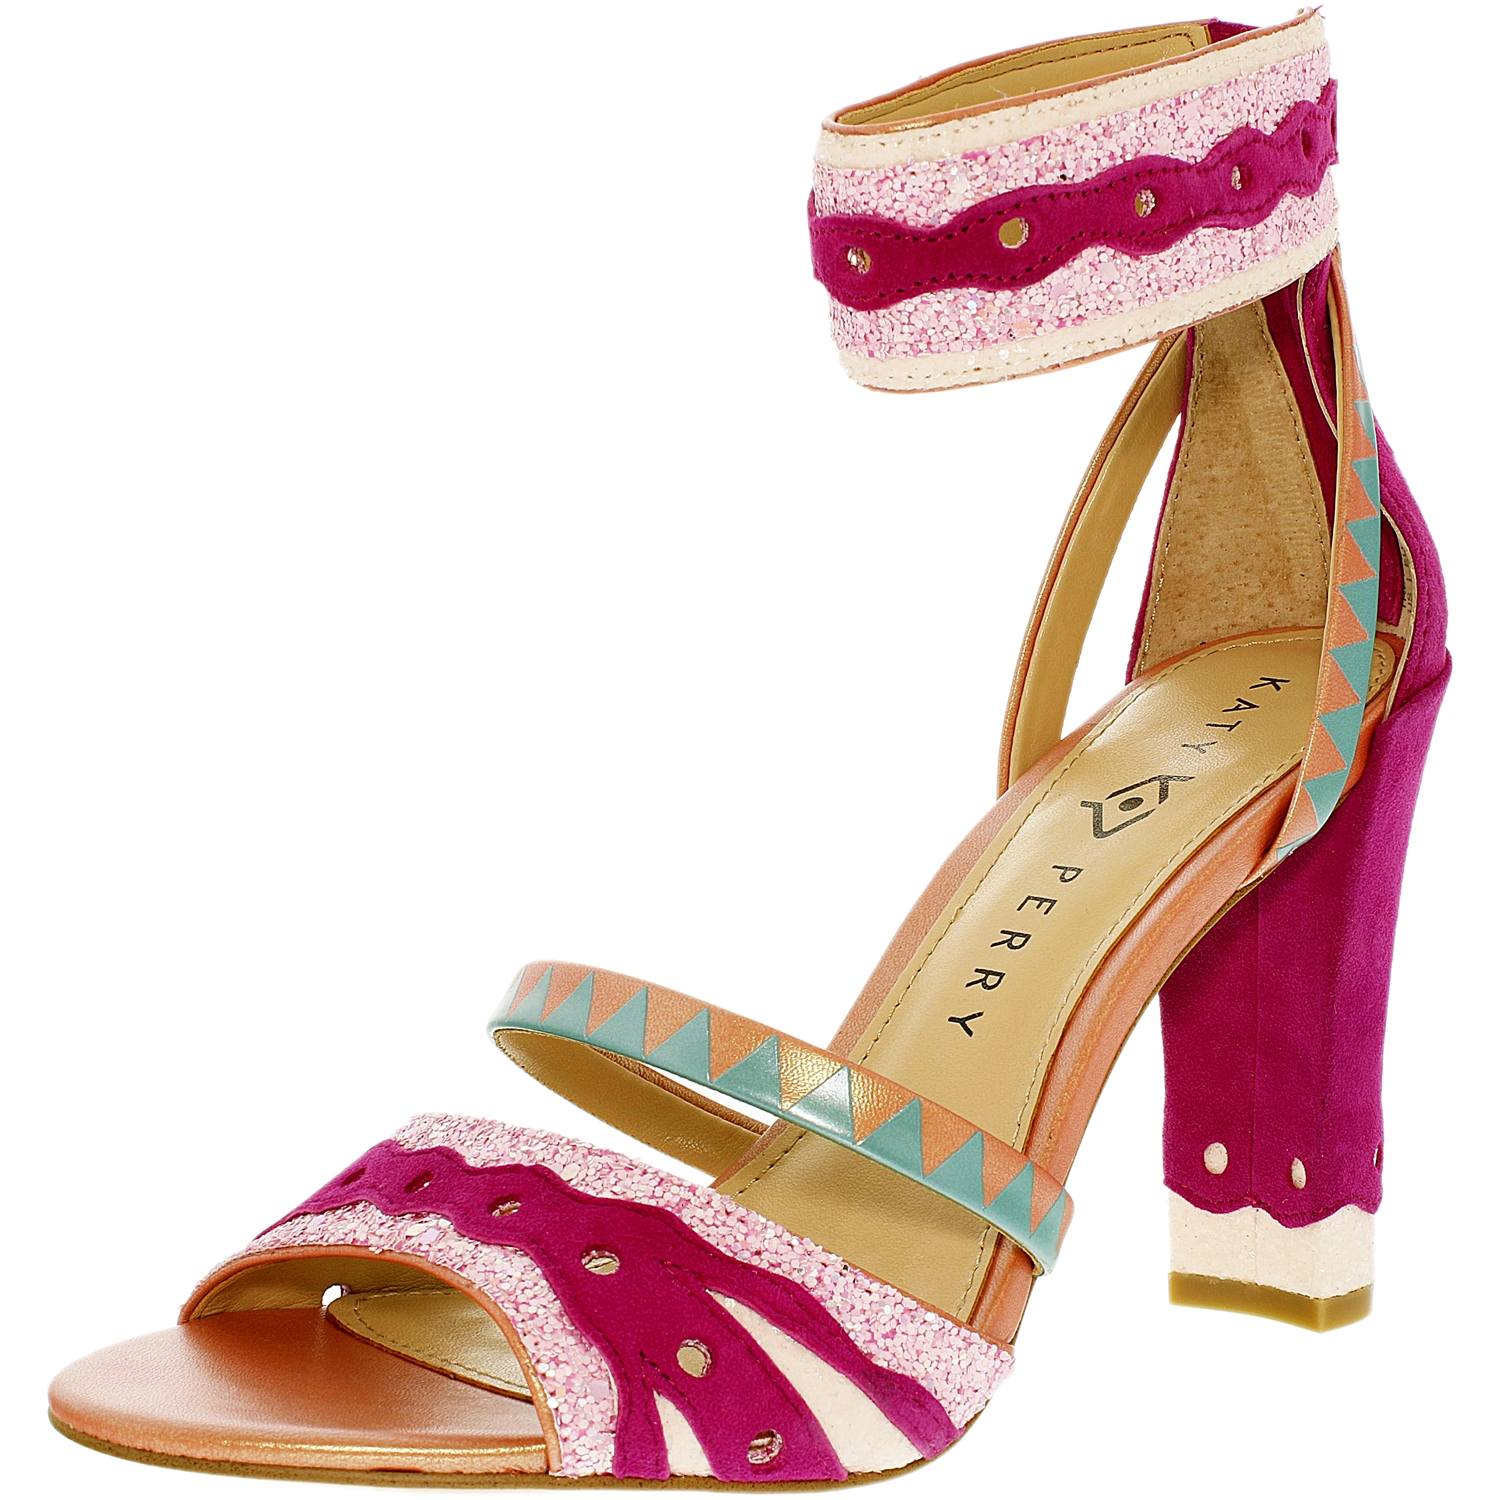 Cheap high heels under 10 dollars | Women's Shoes | Compare Prices ...